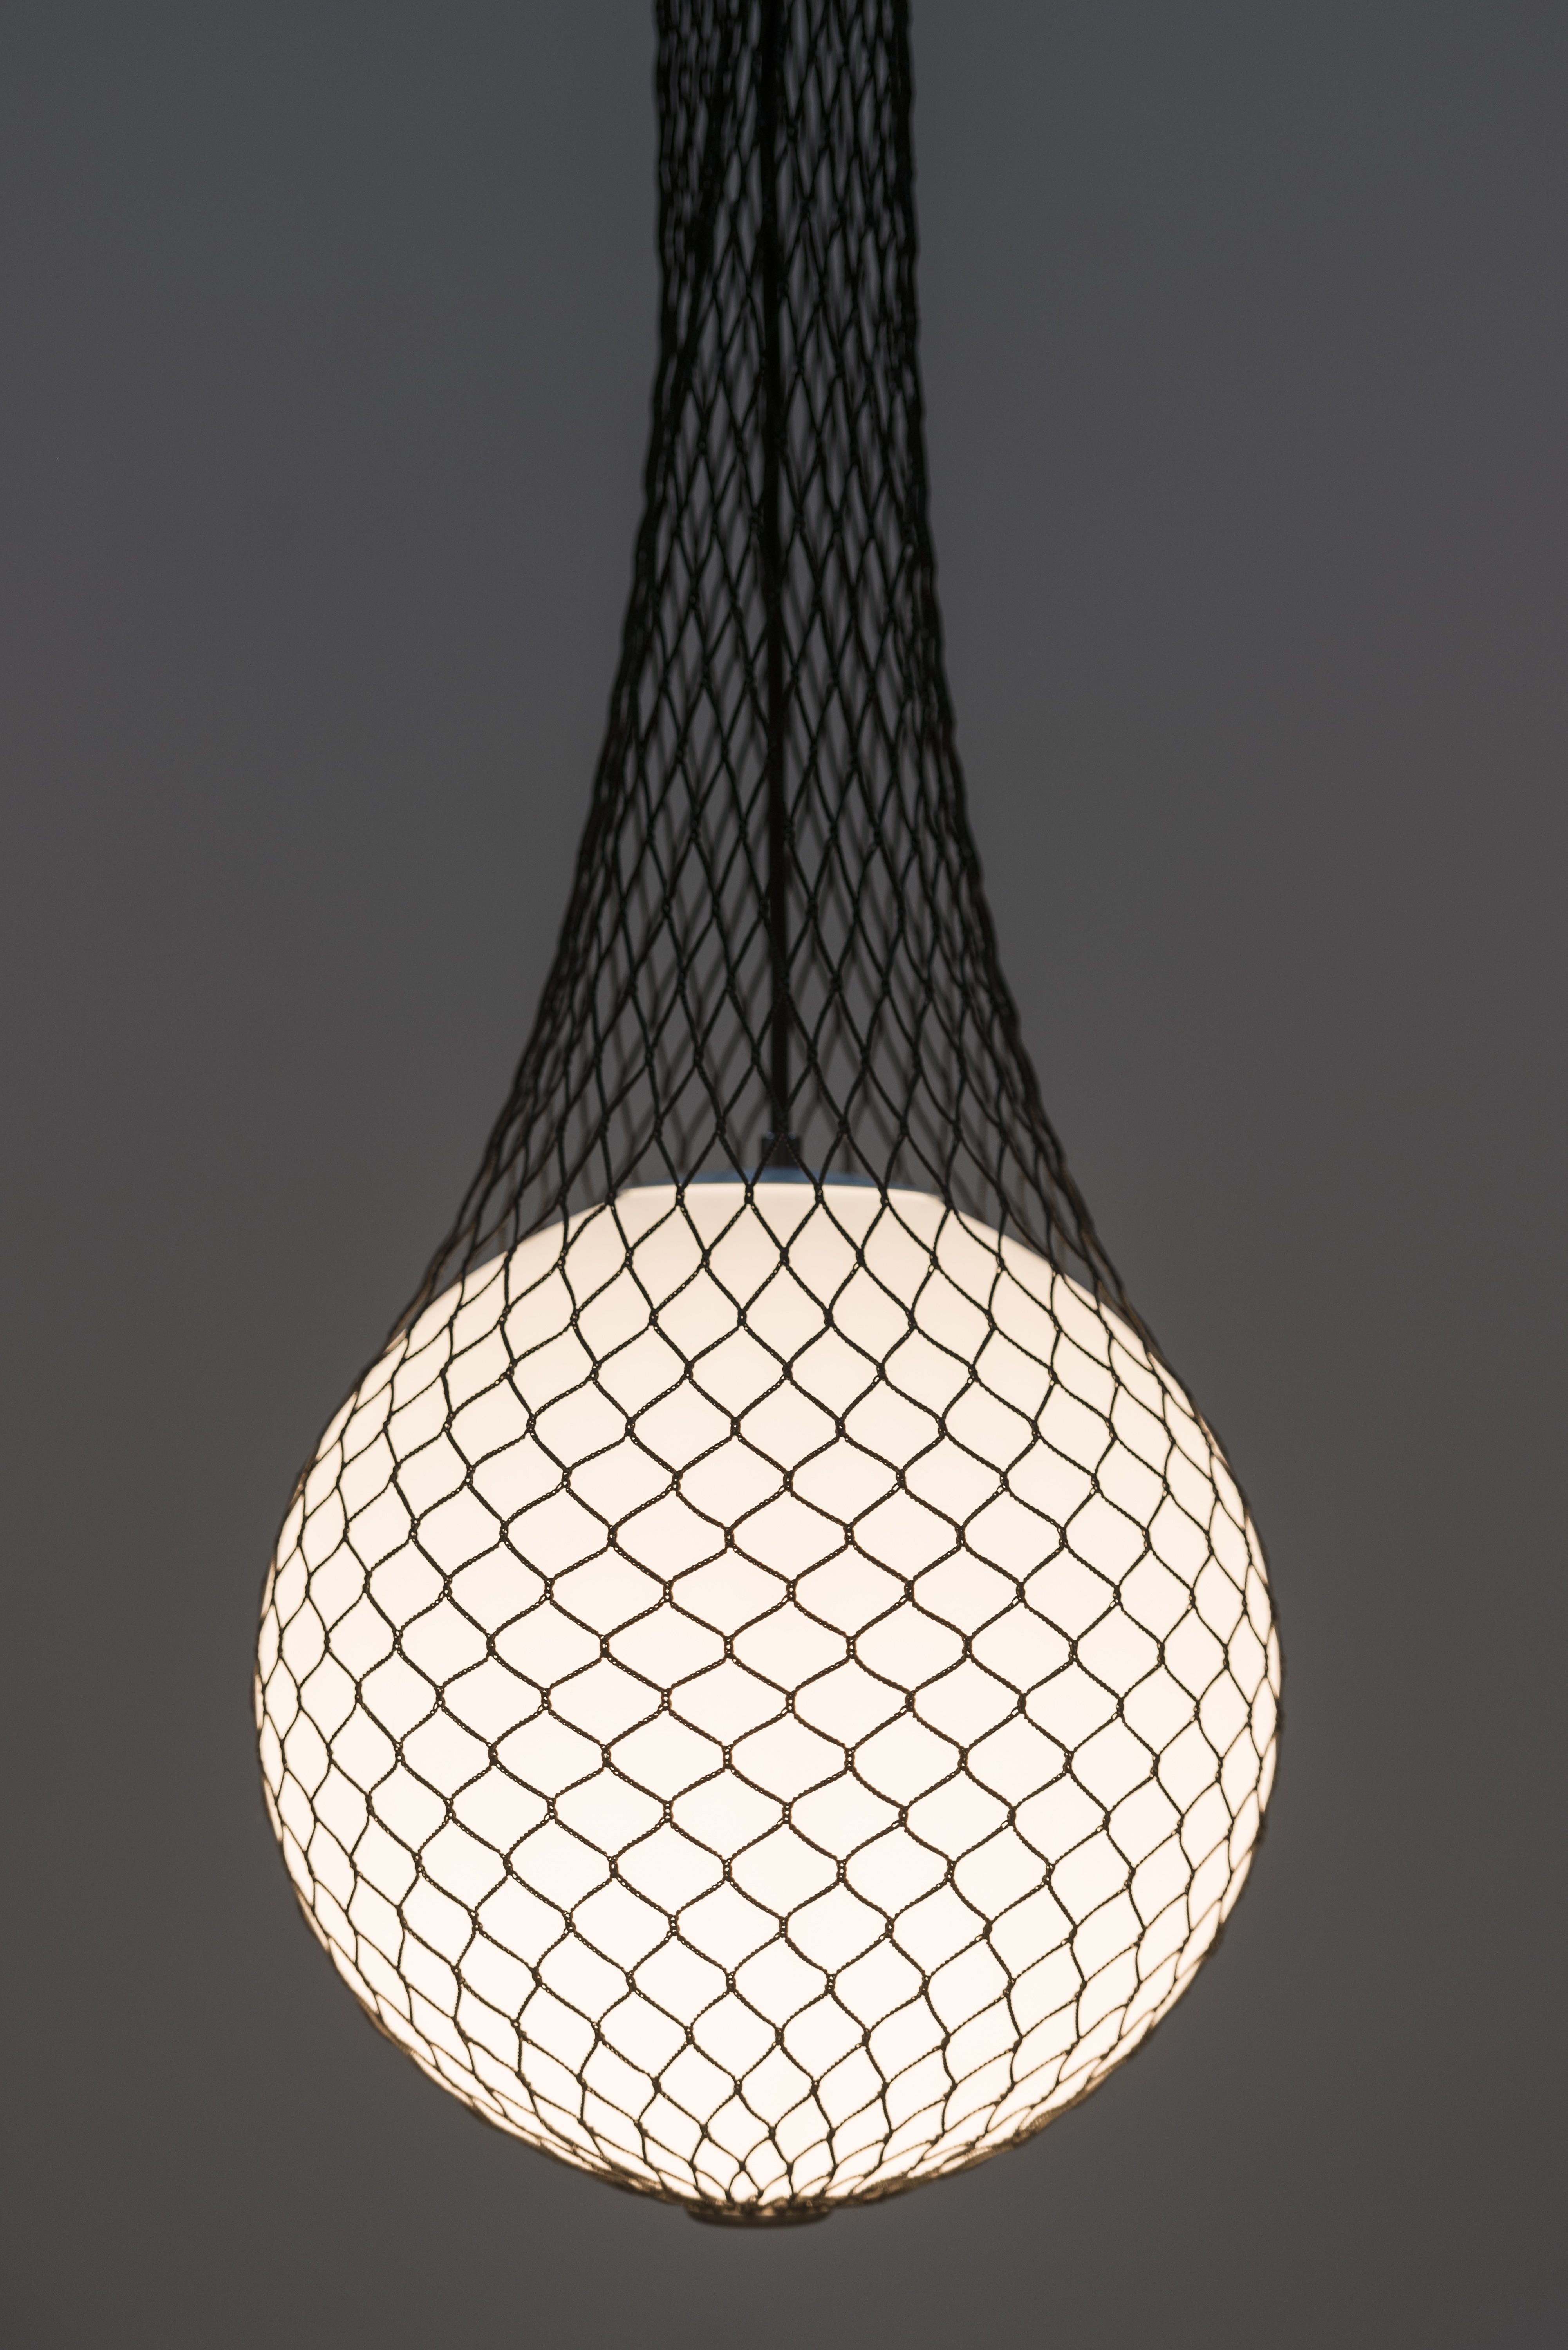 Network Suspension Lamp Design By Benjamin Hopf For Formagenda Available At In Different Lenghts And Colours Mit Bildern Lampen Und Leuchten Anhanger Lampen Lampendesign